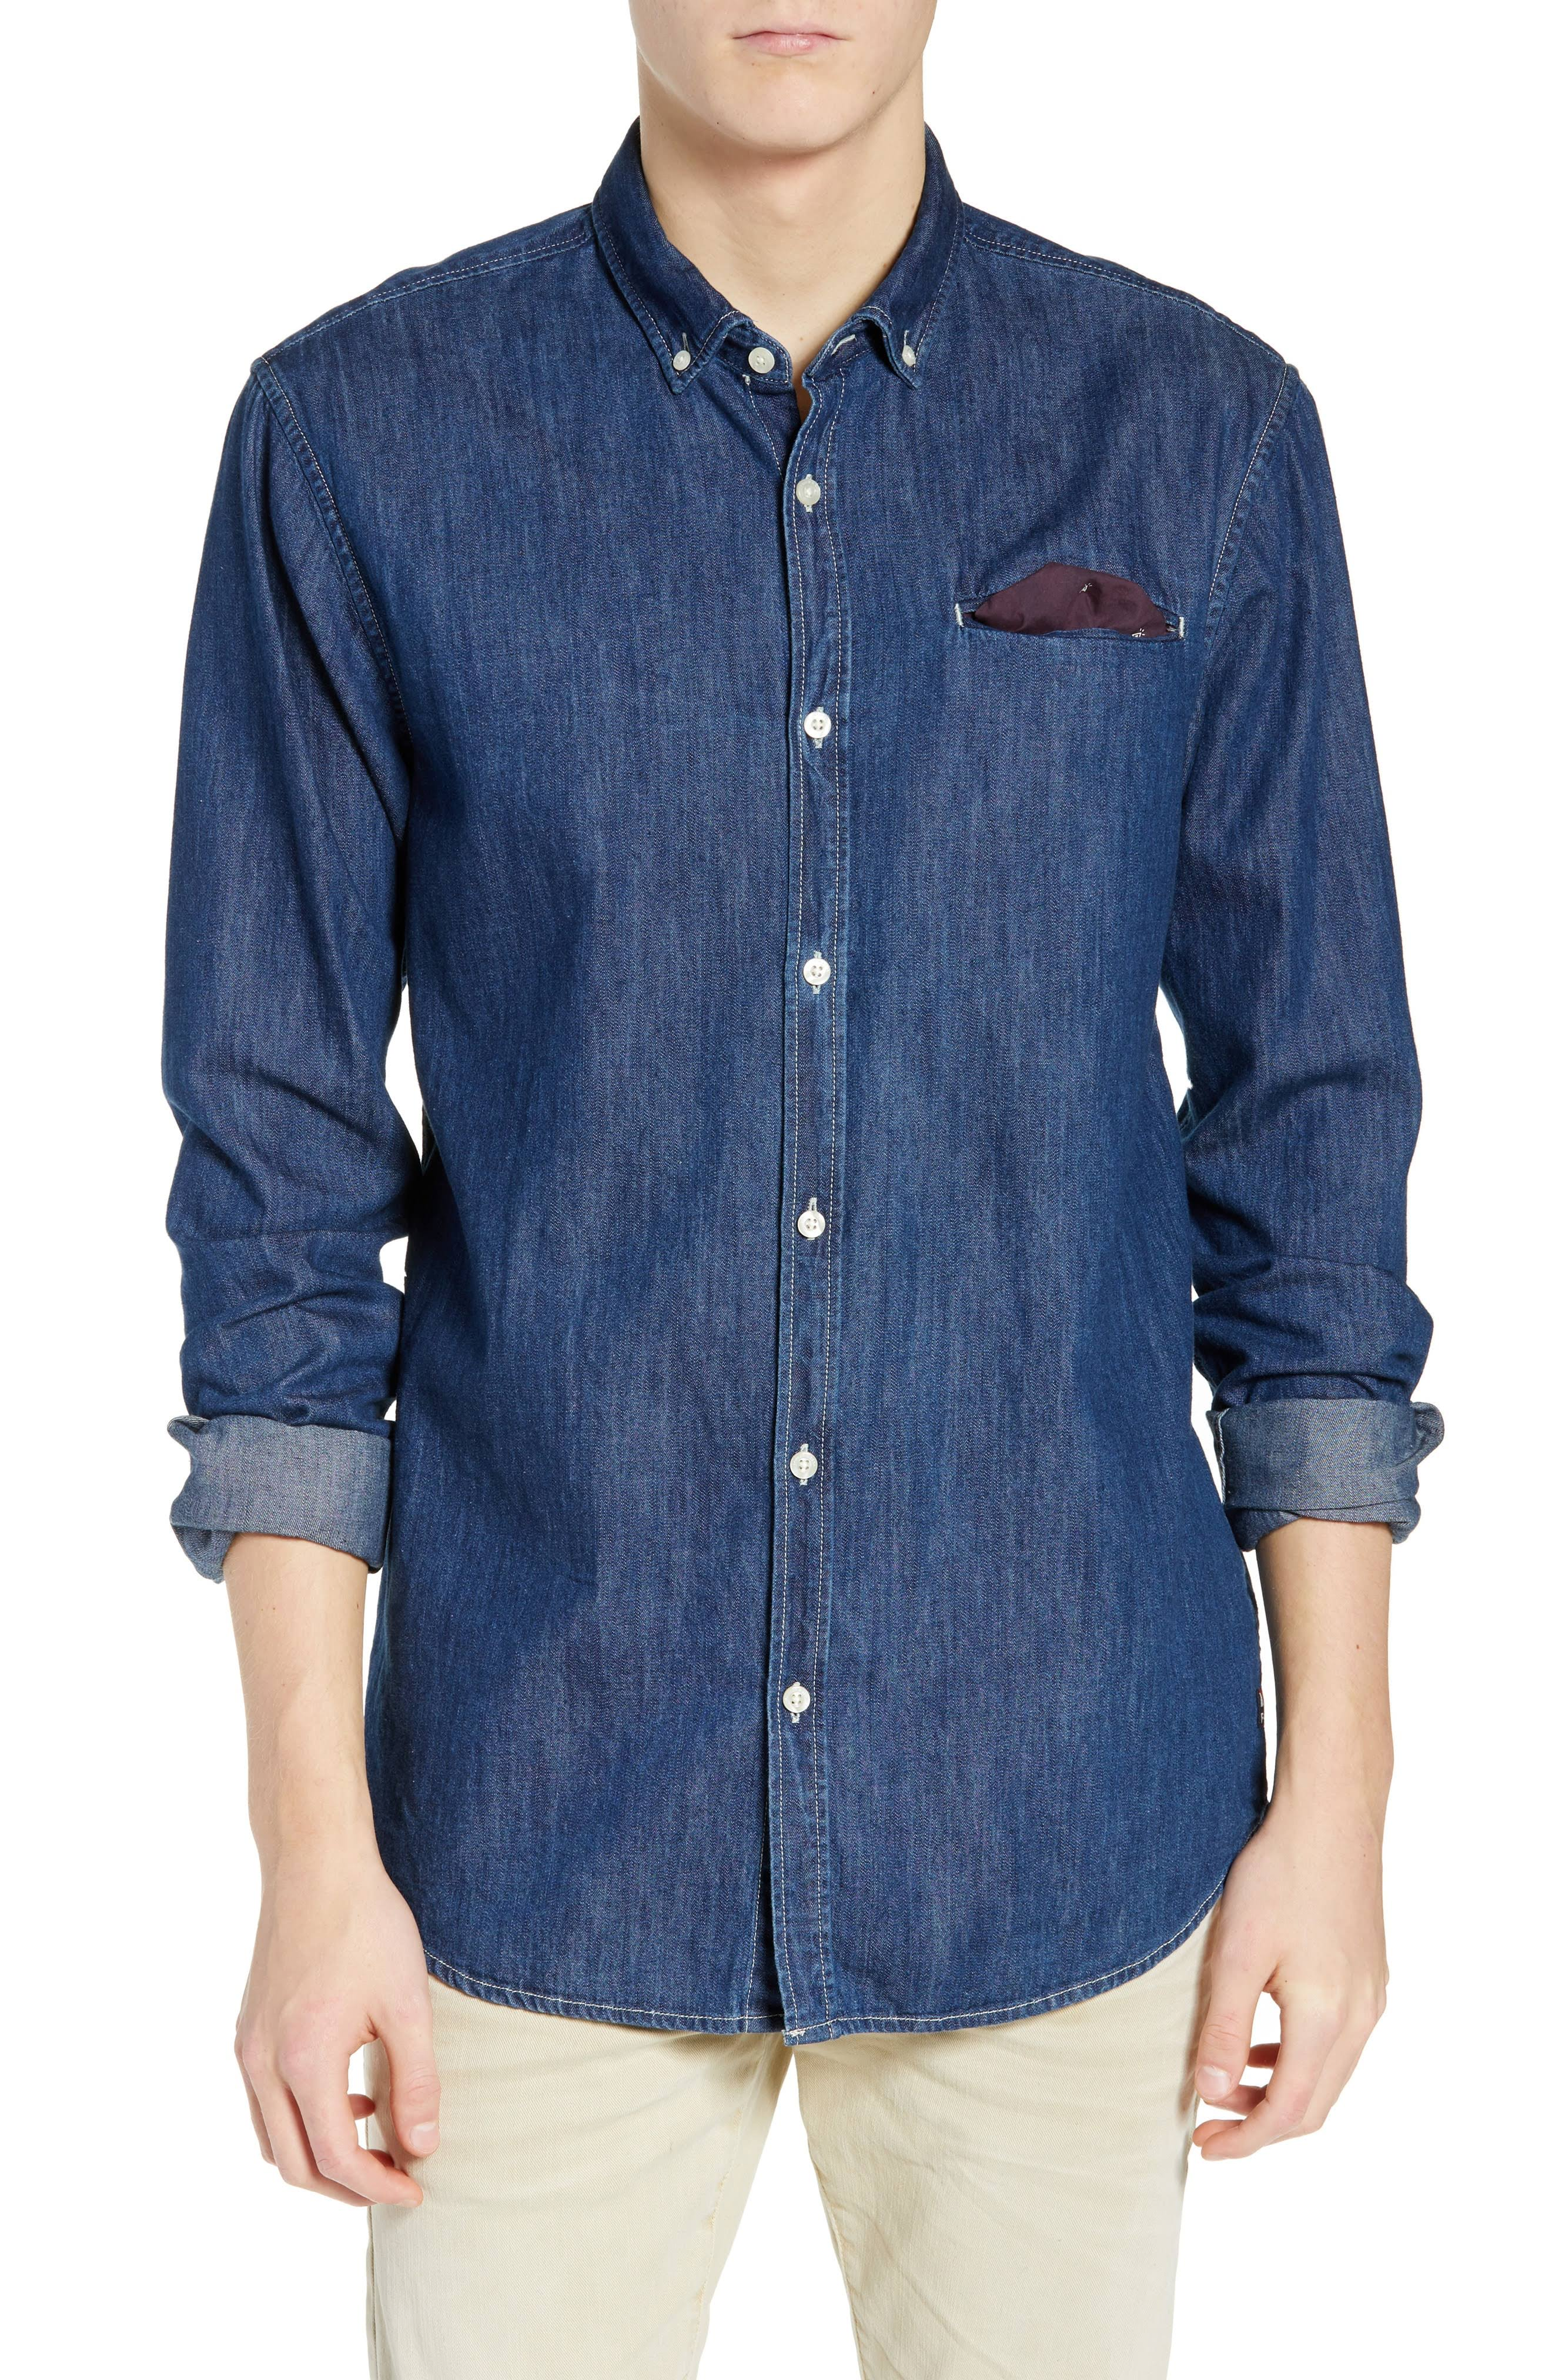 Soda Color Indigo Vaquera amp; L Camisa Tamaño Scotch 5qwfvUCp